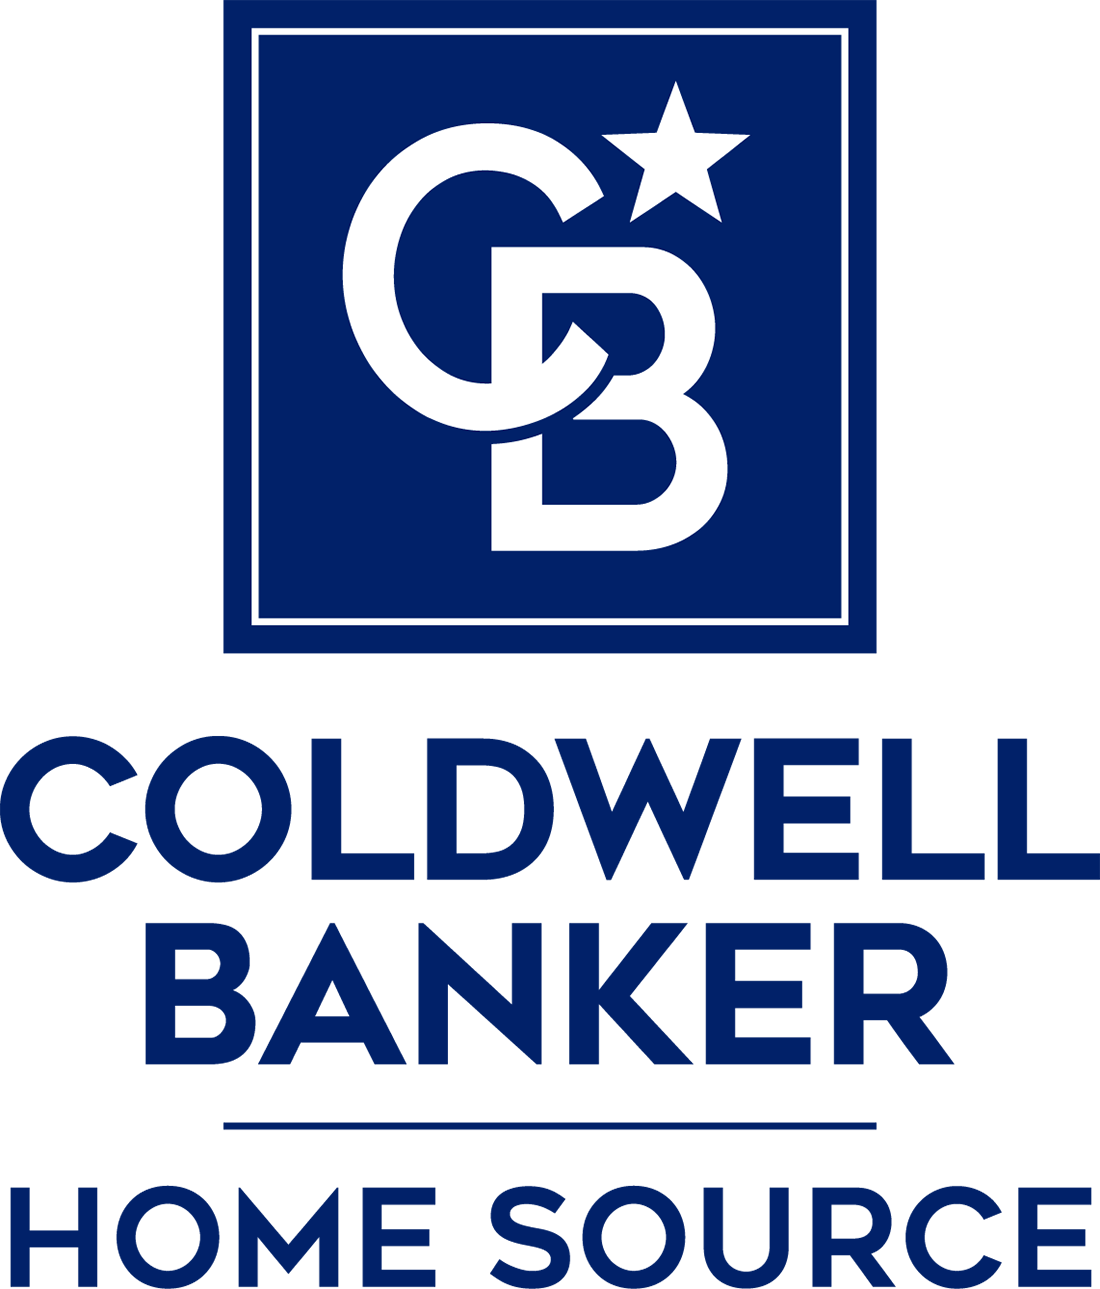 Nancy Bilsborough - Coldwell Banker Home Source Logo